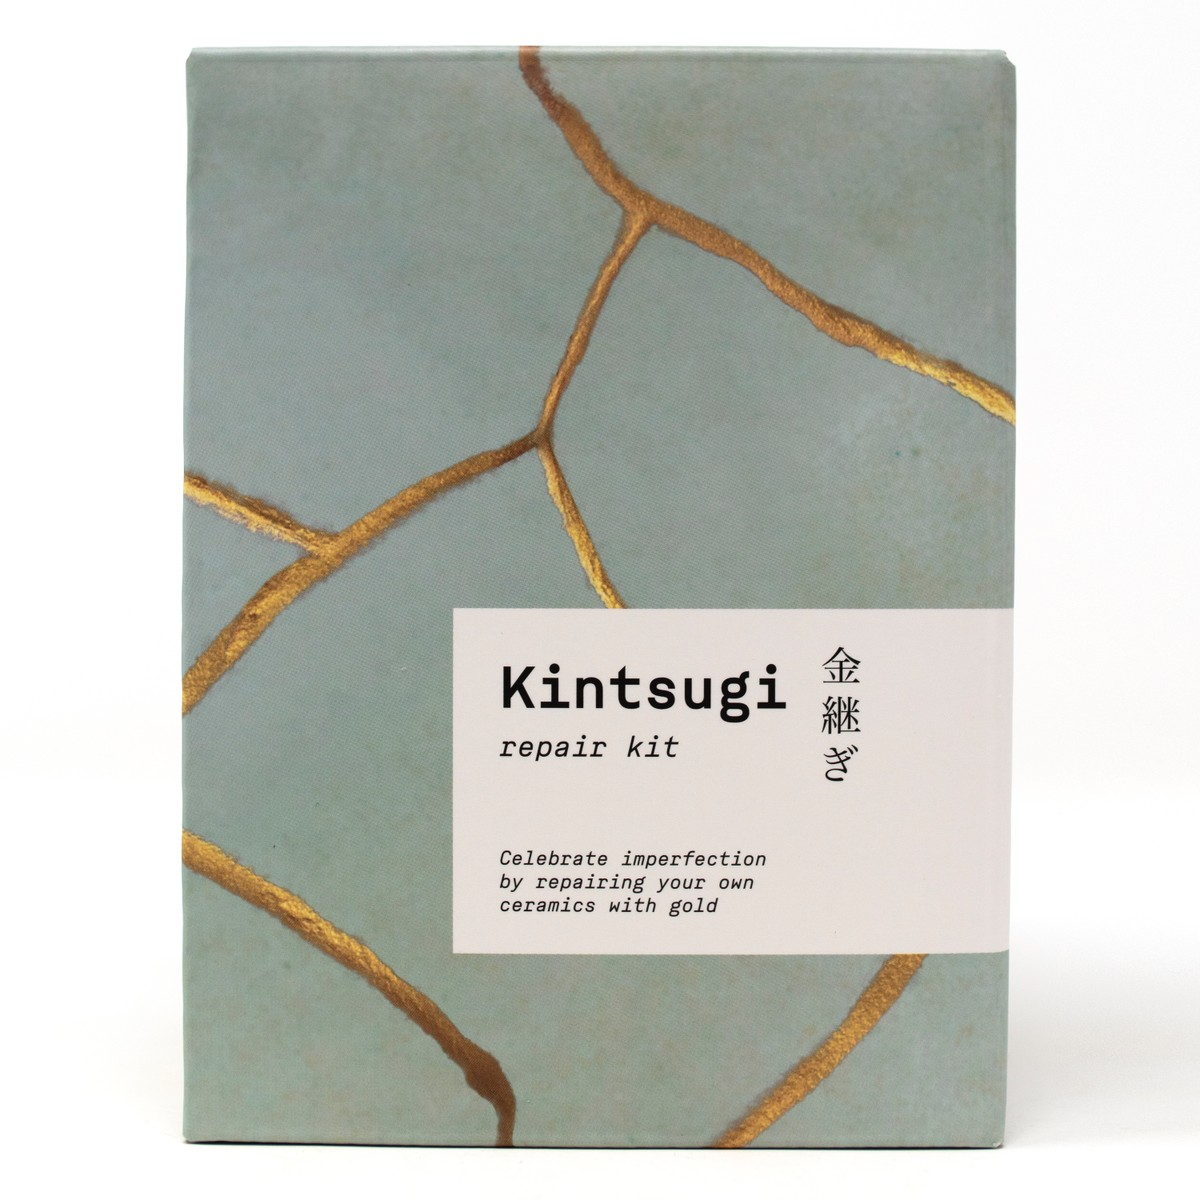 Photo of Kintsugi Repair Kit